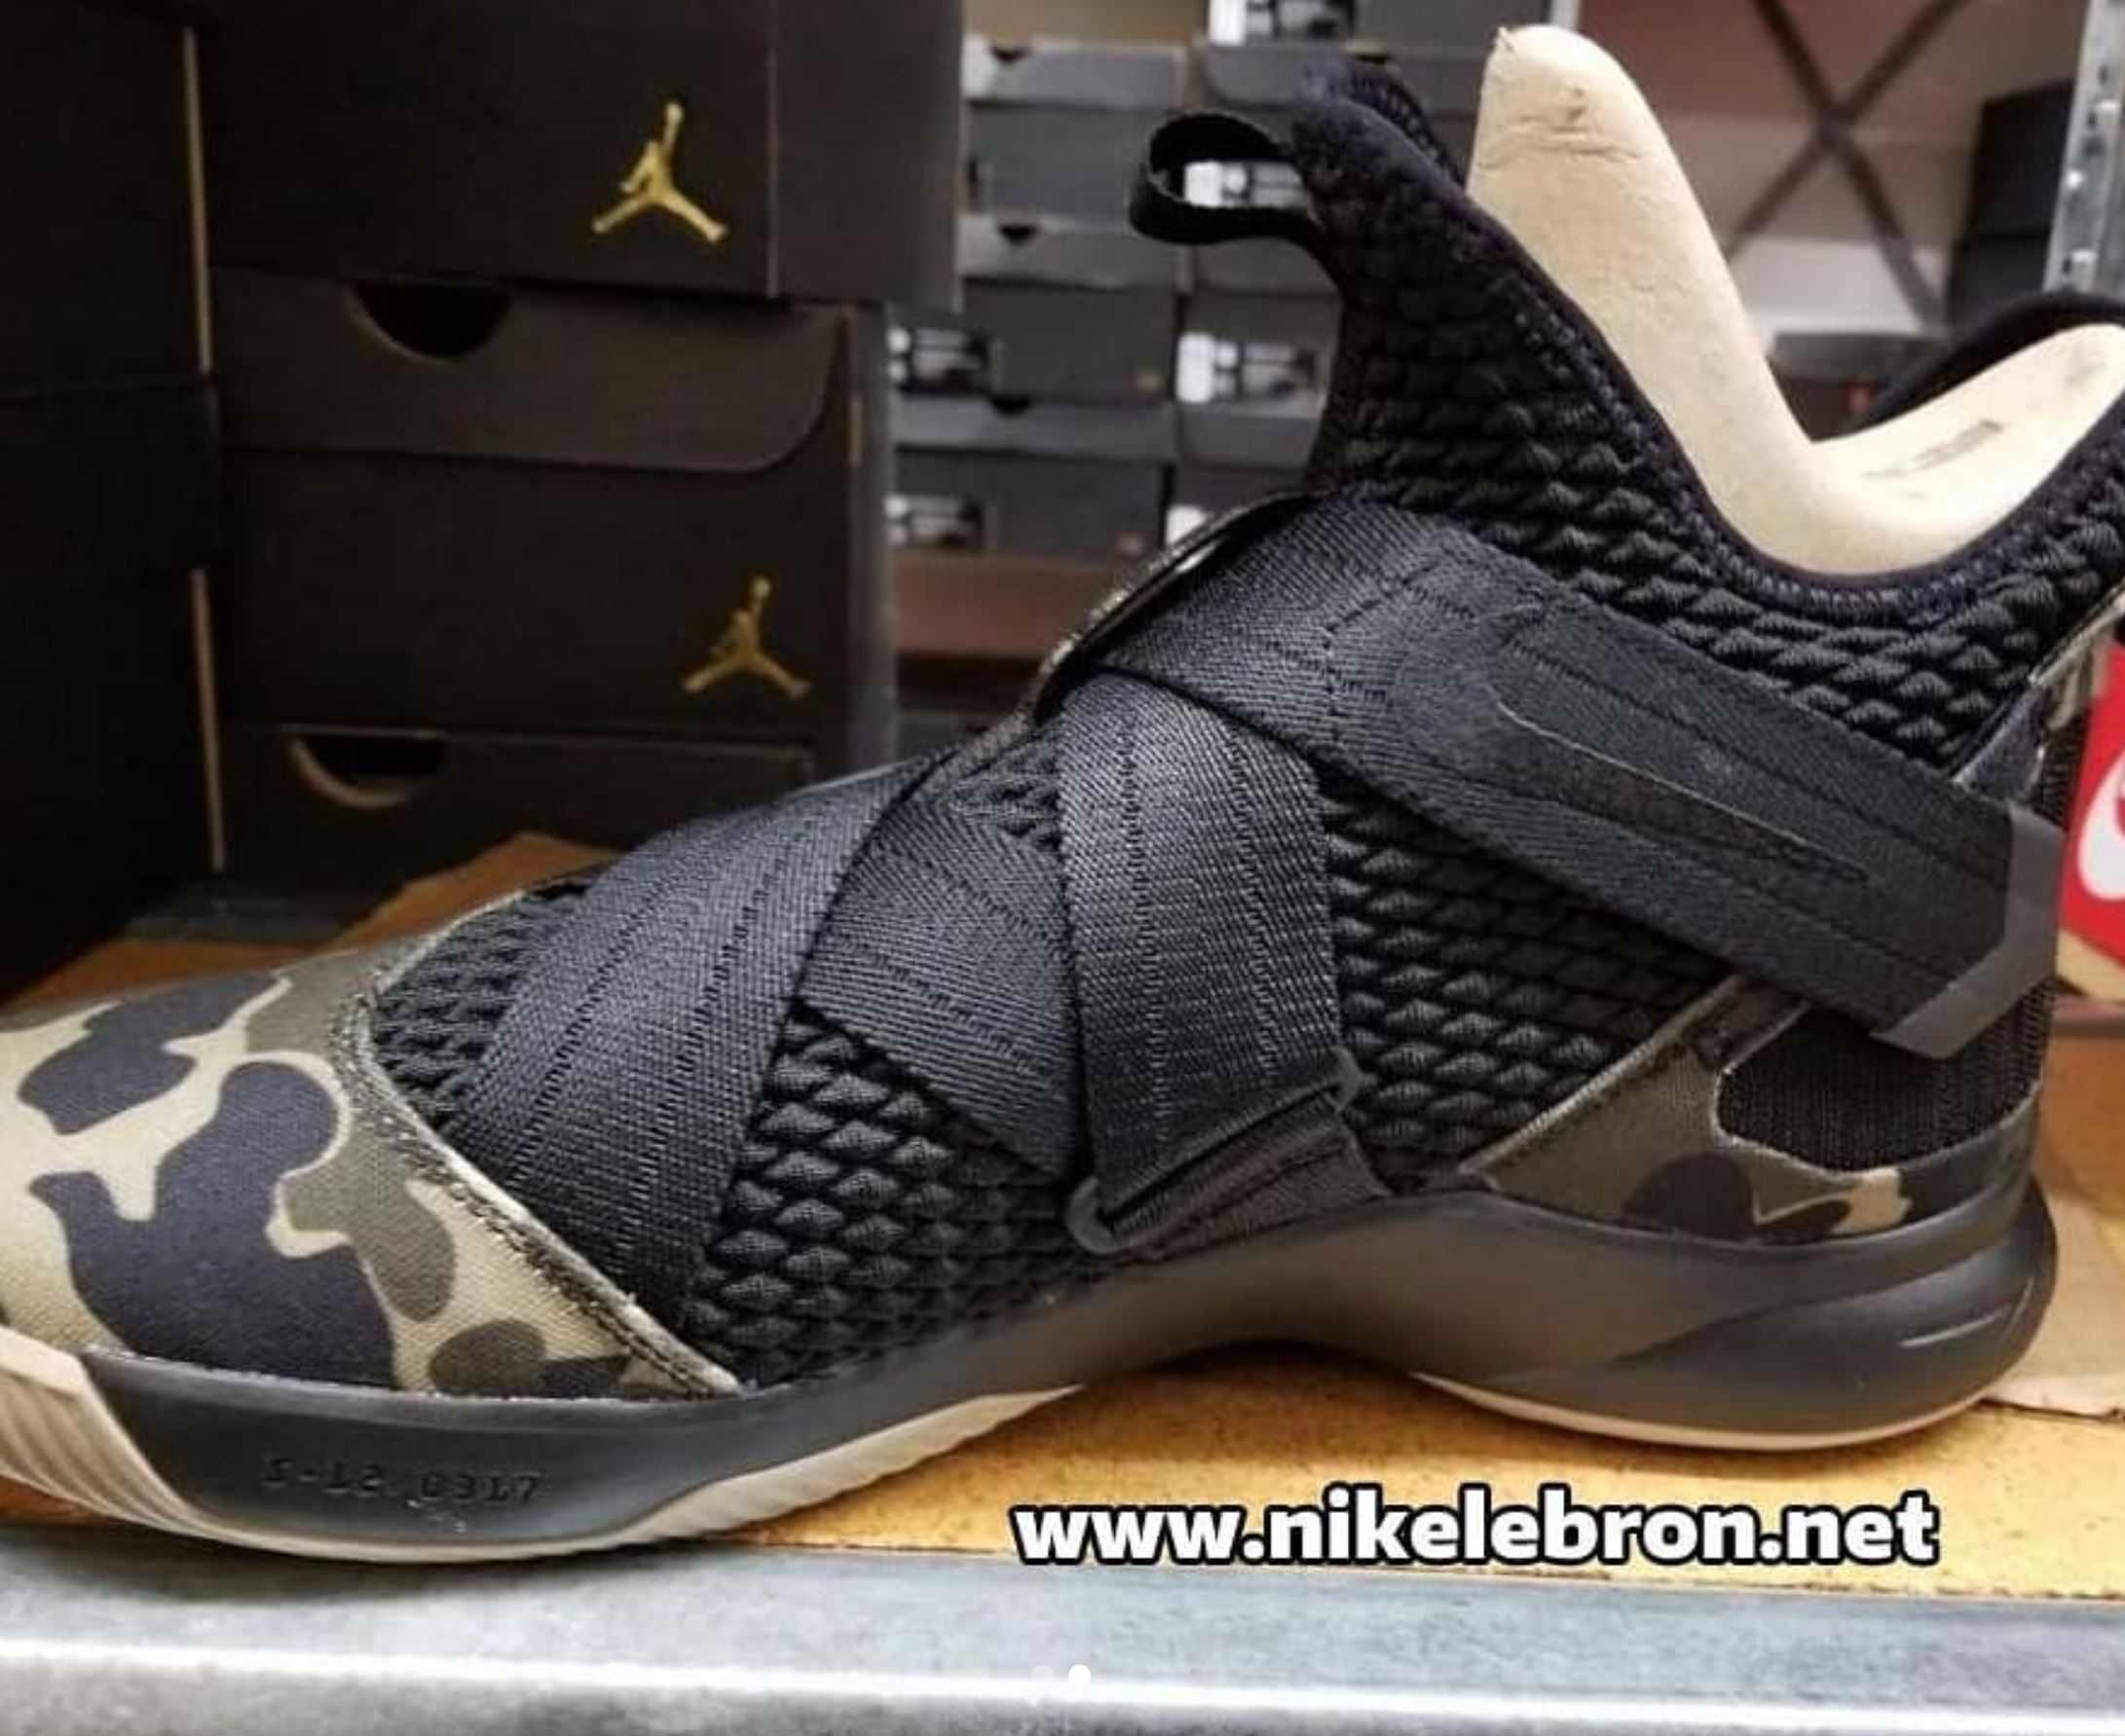 the LeBron Soldier 12